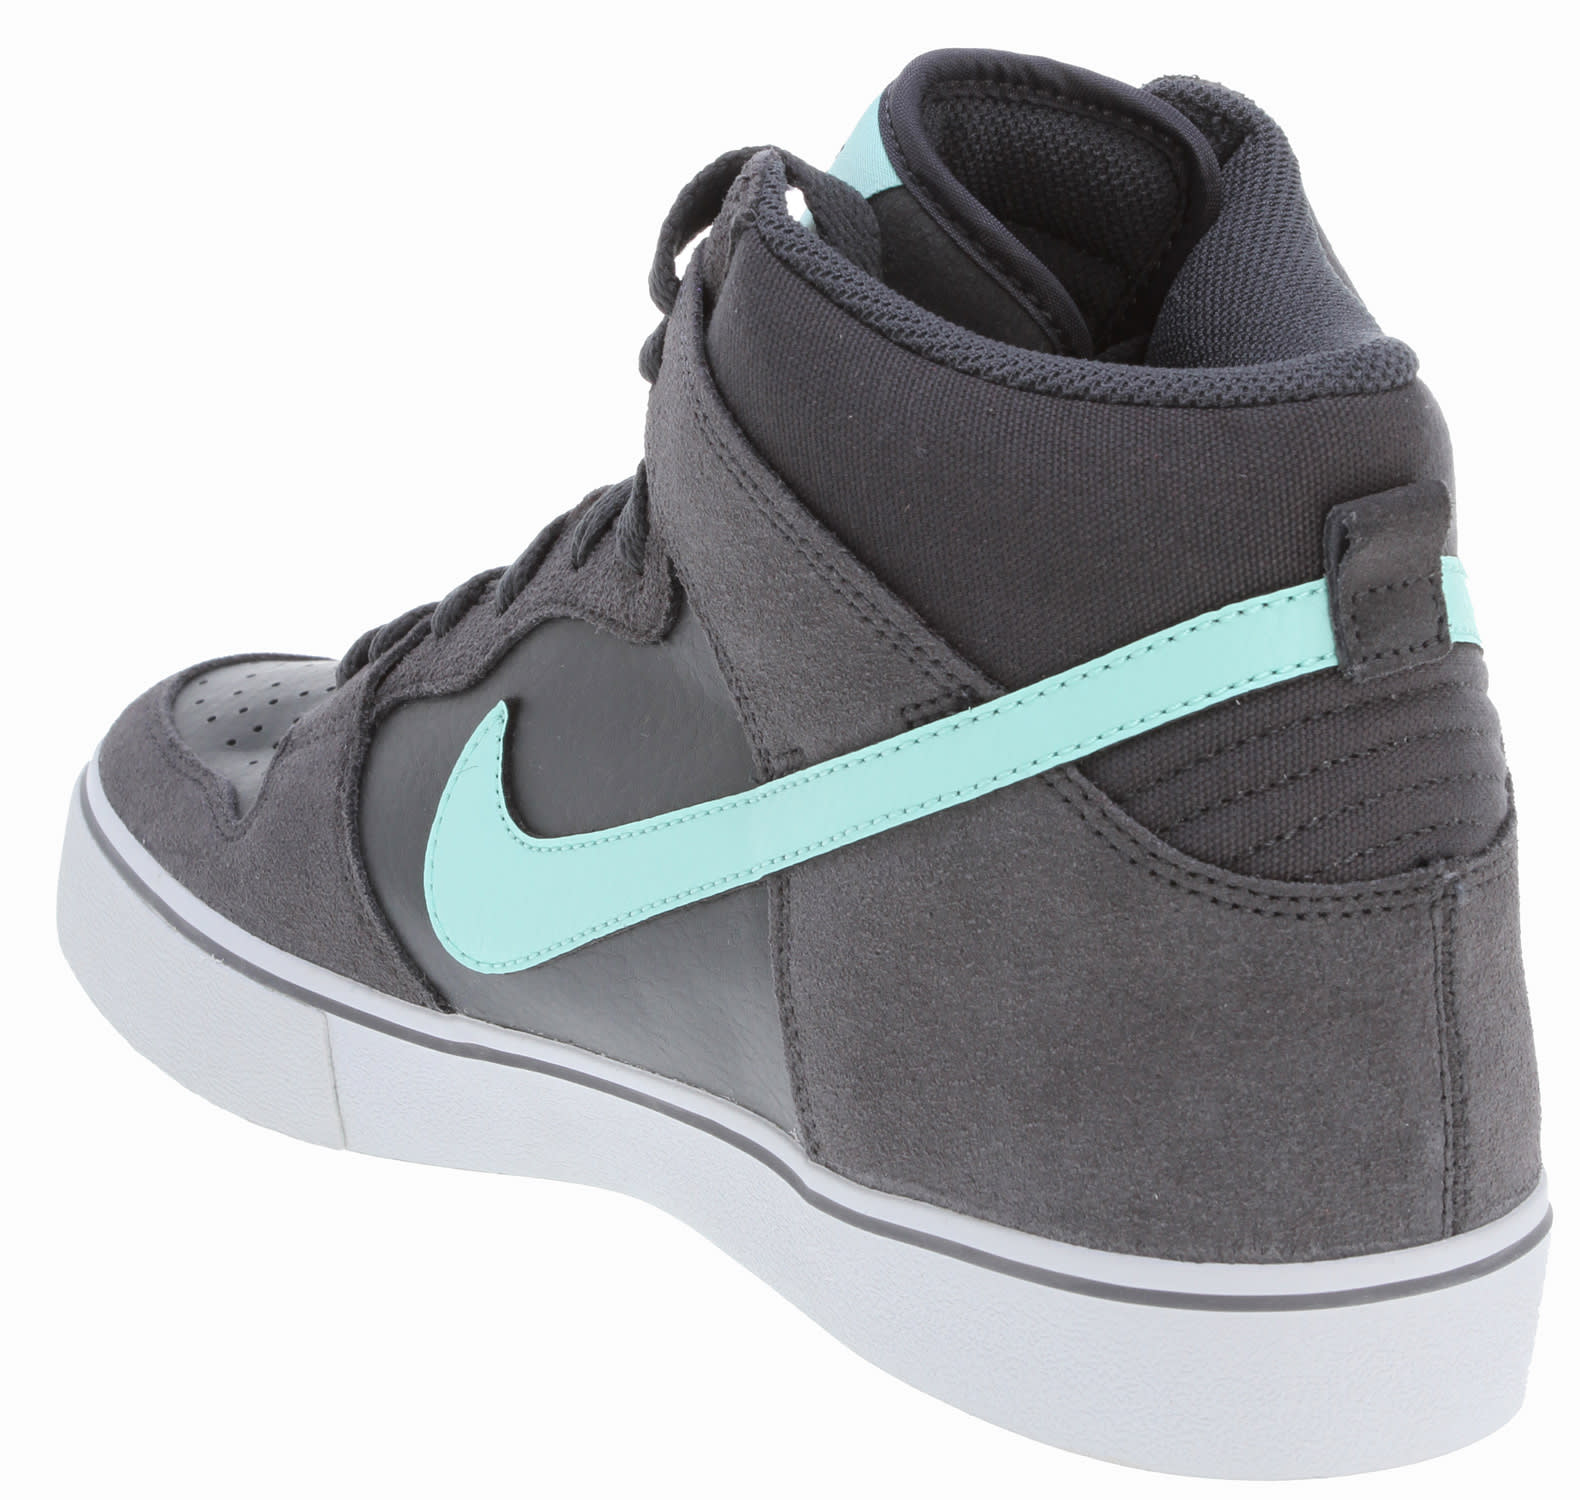 online retailer 77285 f5e2e Nike Dunk High Lr Skate Shoes - thumbnail 3